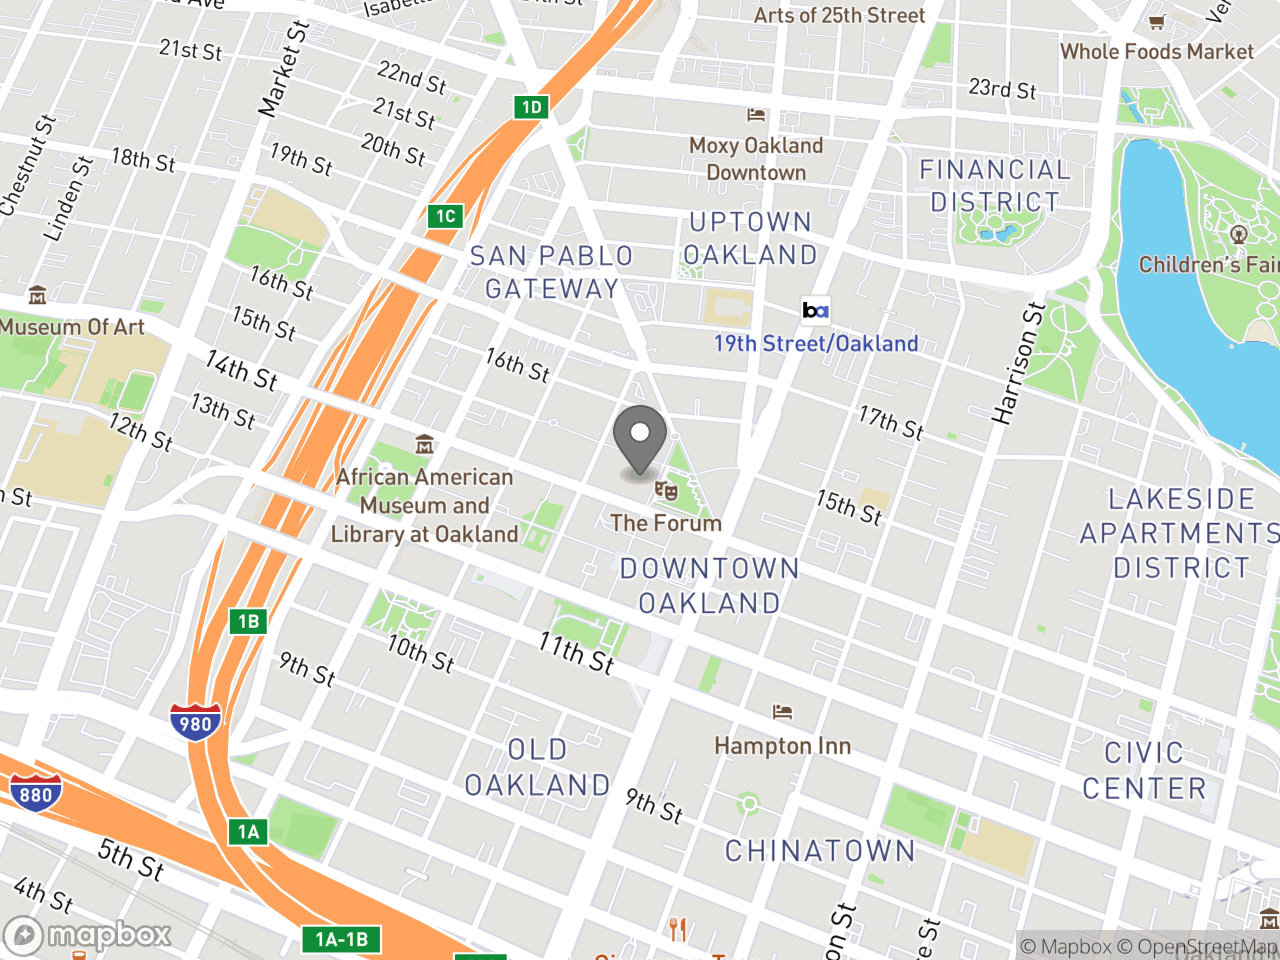 Map image for PAC January 3rd Meeting, located at 1 Frank H Ogawa Plaza in Oakland, CA 94612